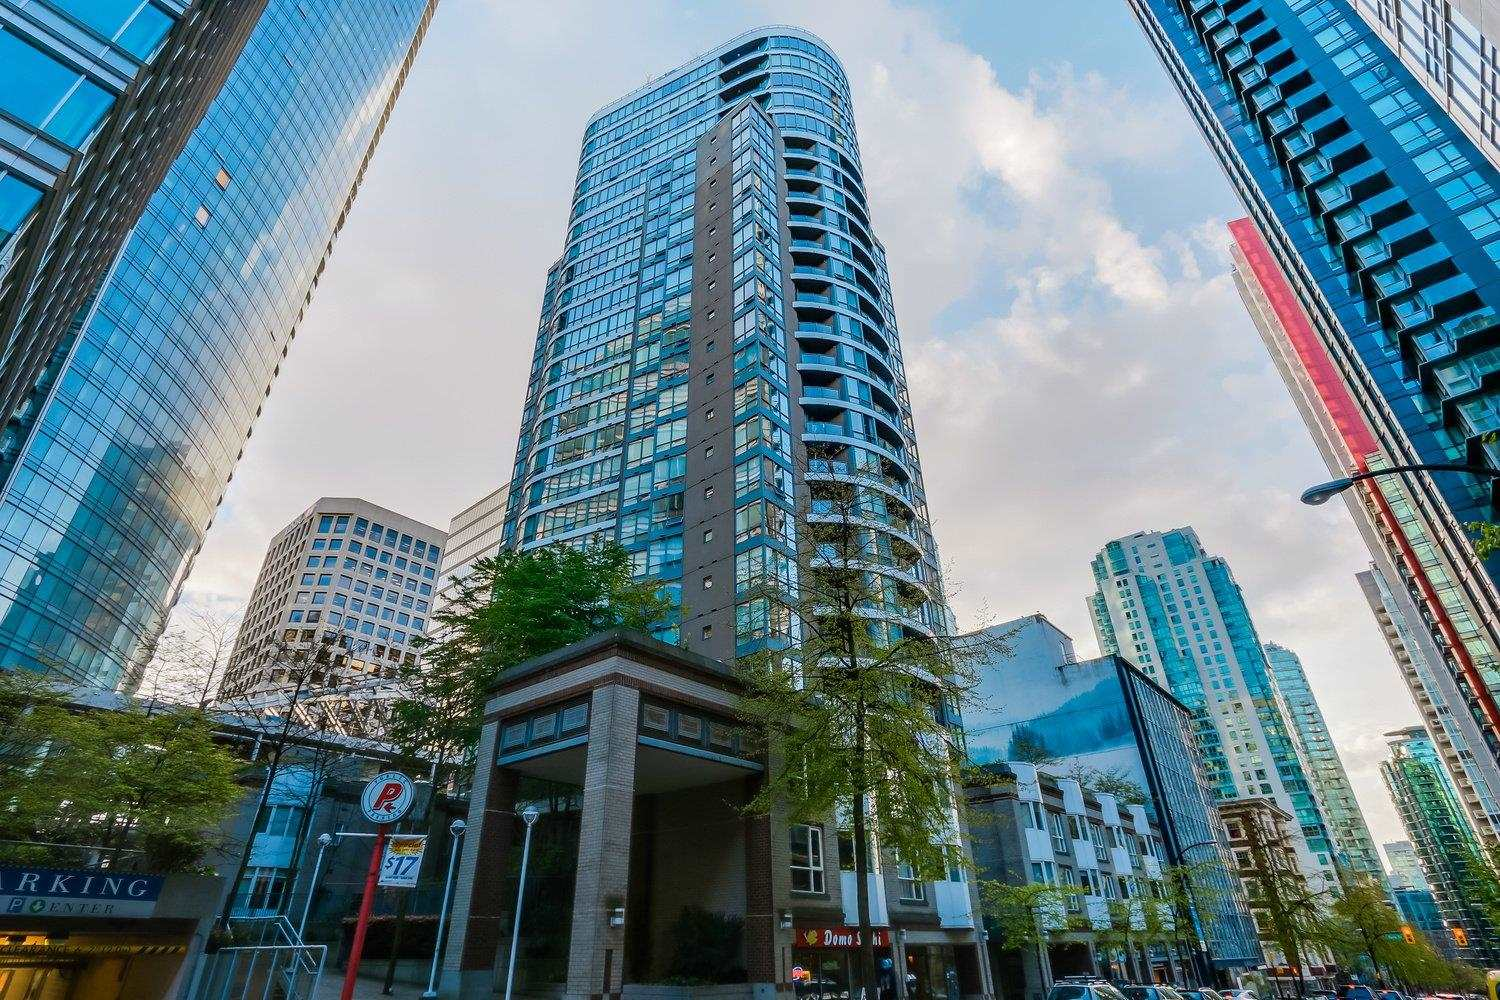 907 1166 MELVILLE STREET - Coal Harbour Apartment/Condo for sale, 1 Bedroom (R2594100) - #1